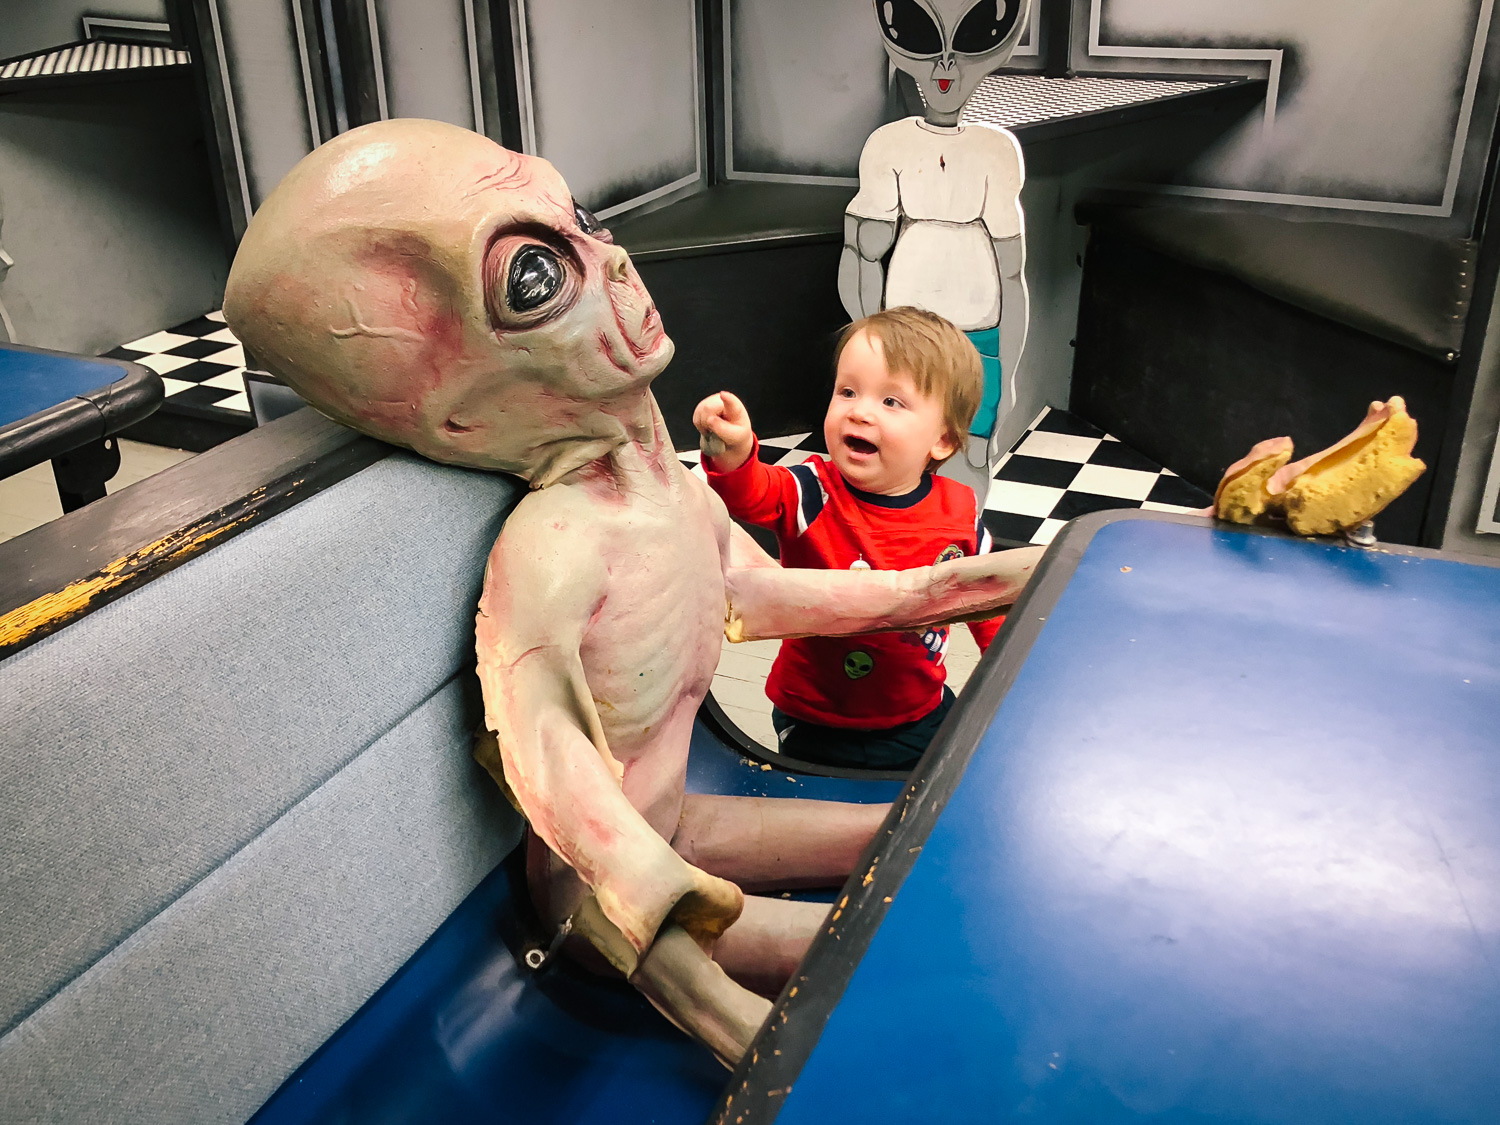 Be sure to stop in Roswell for all your budding future astronauts and alien lovers!